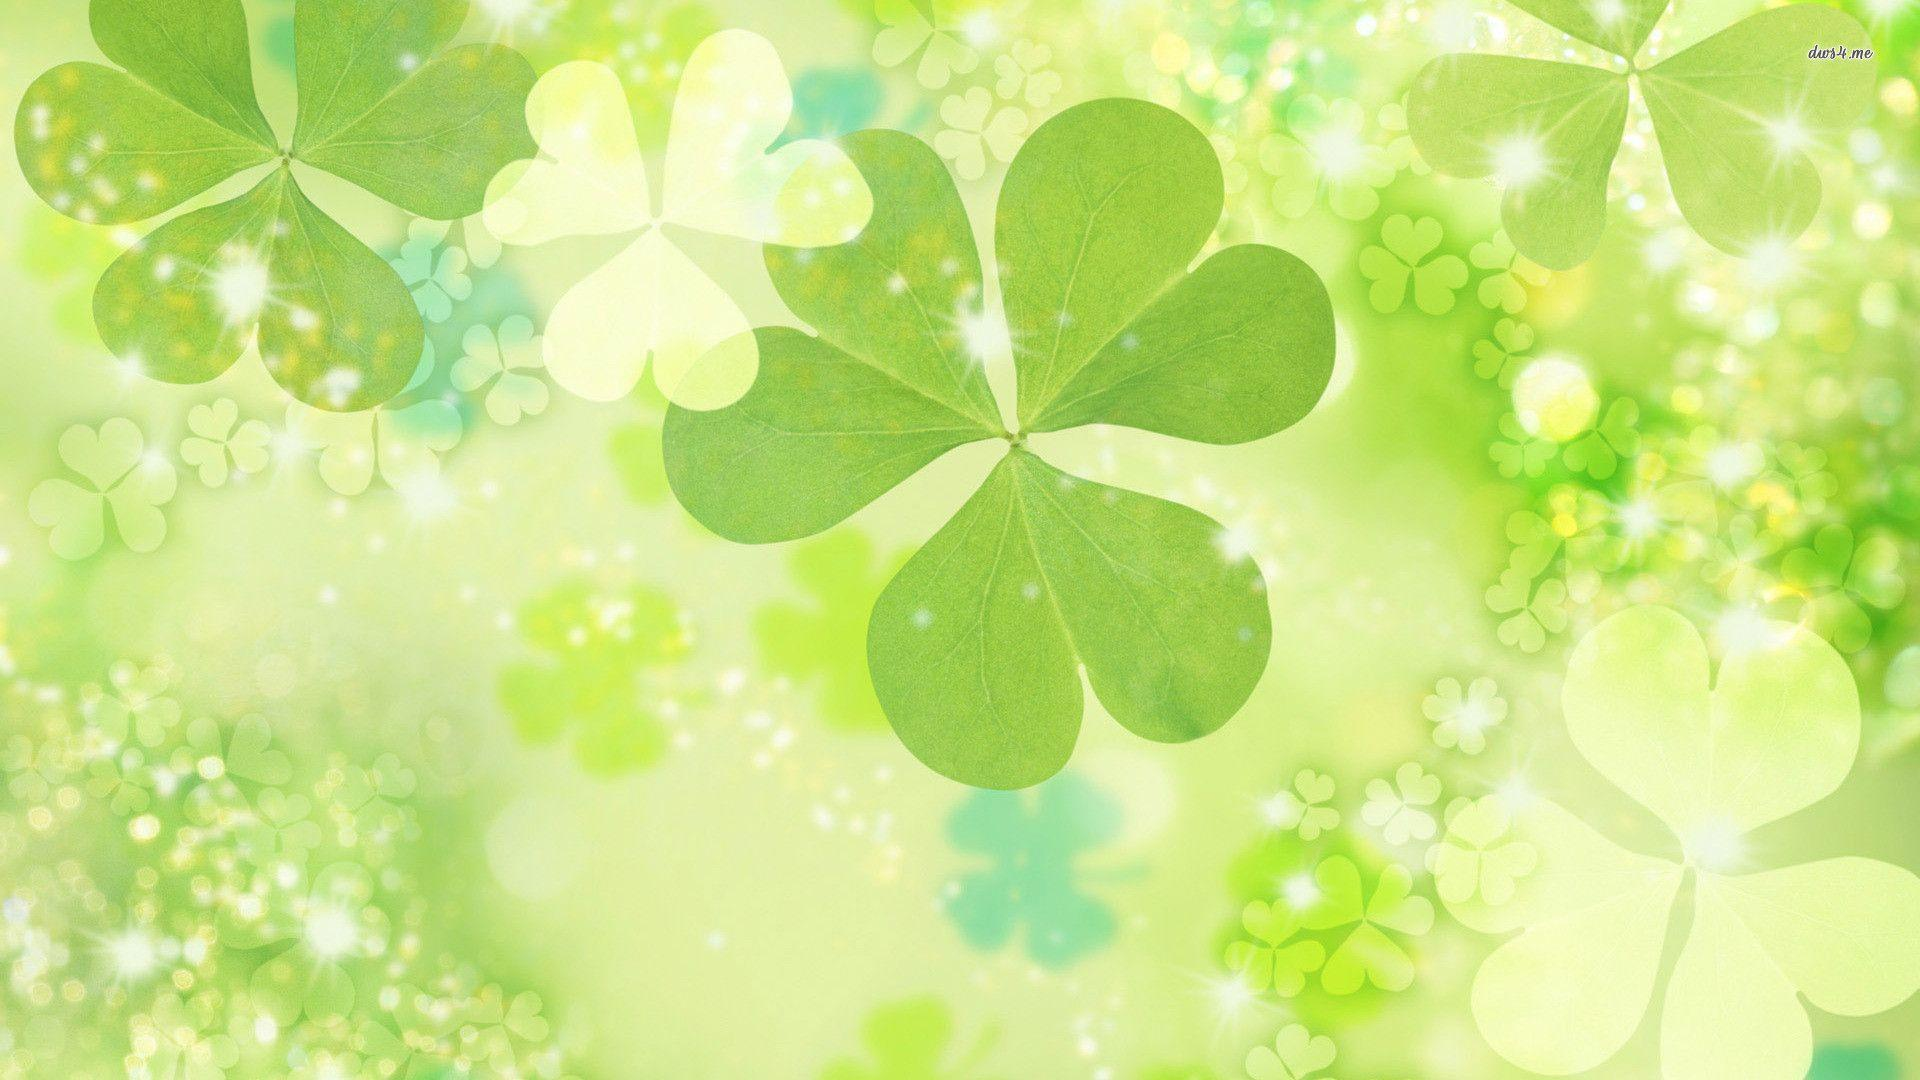 Image For > Four Leaf Clover Wallpapers